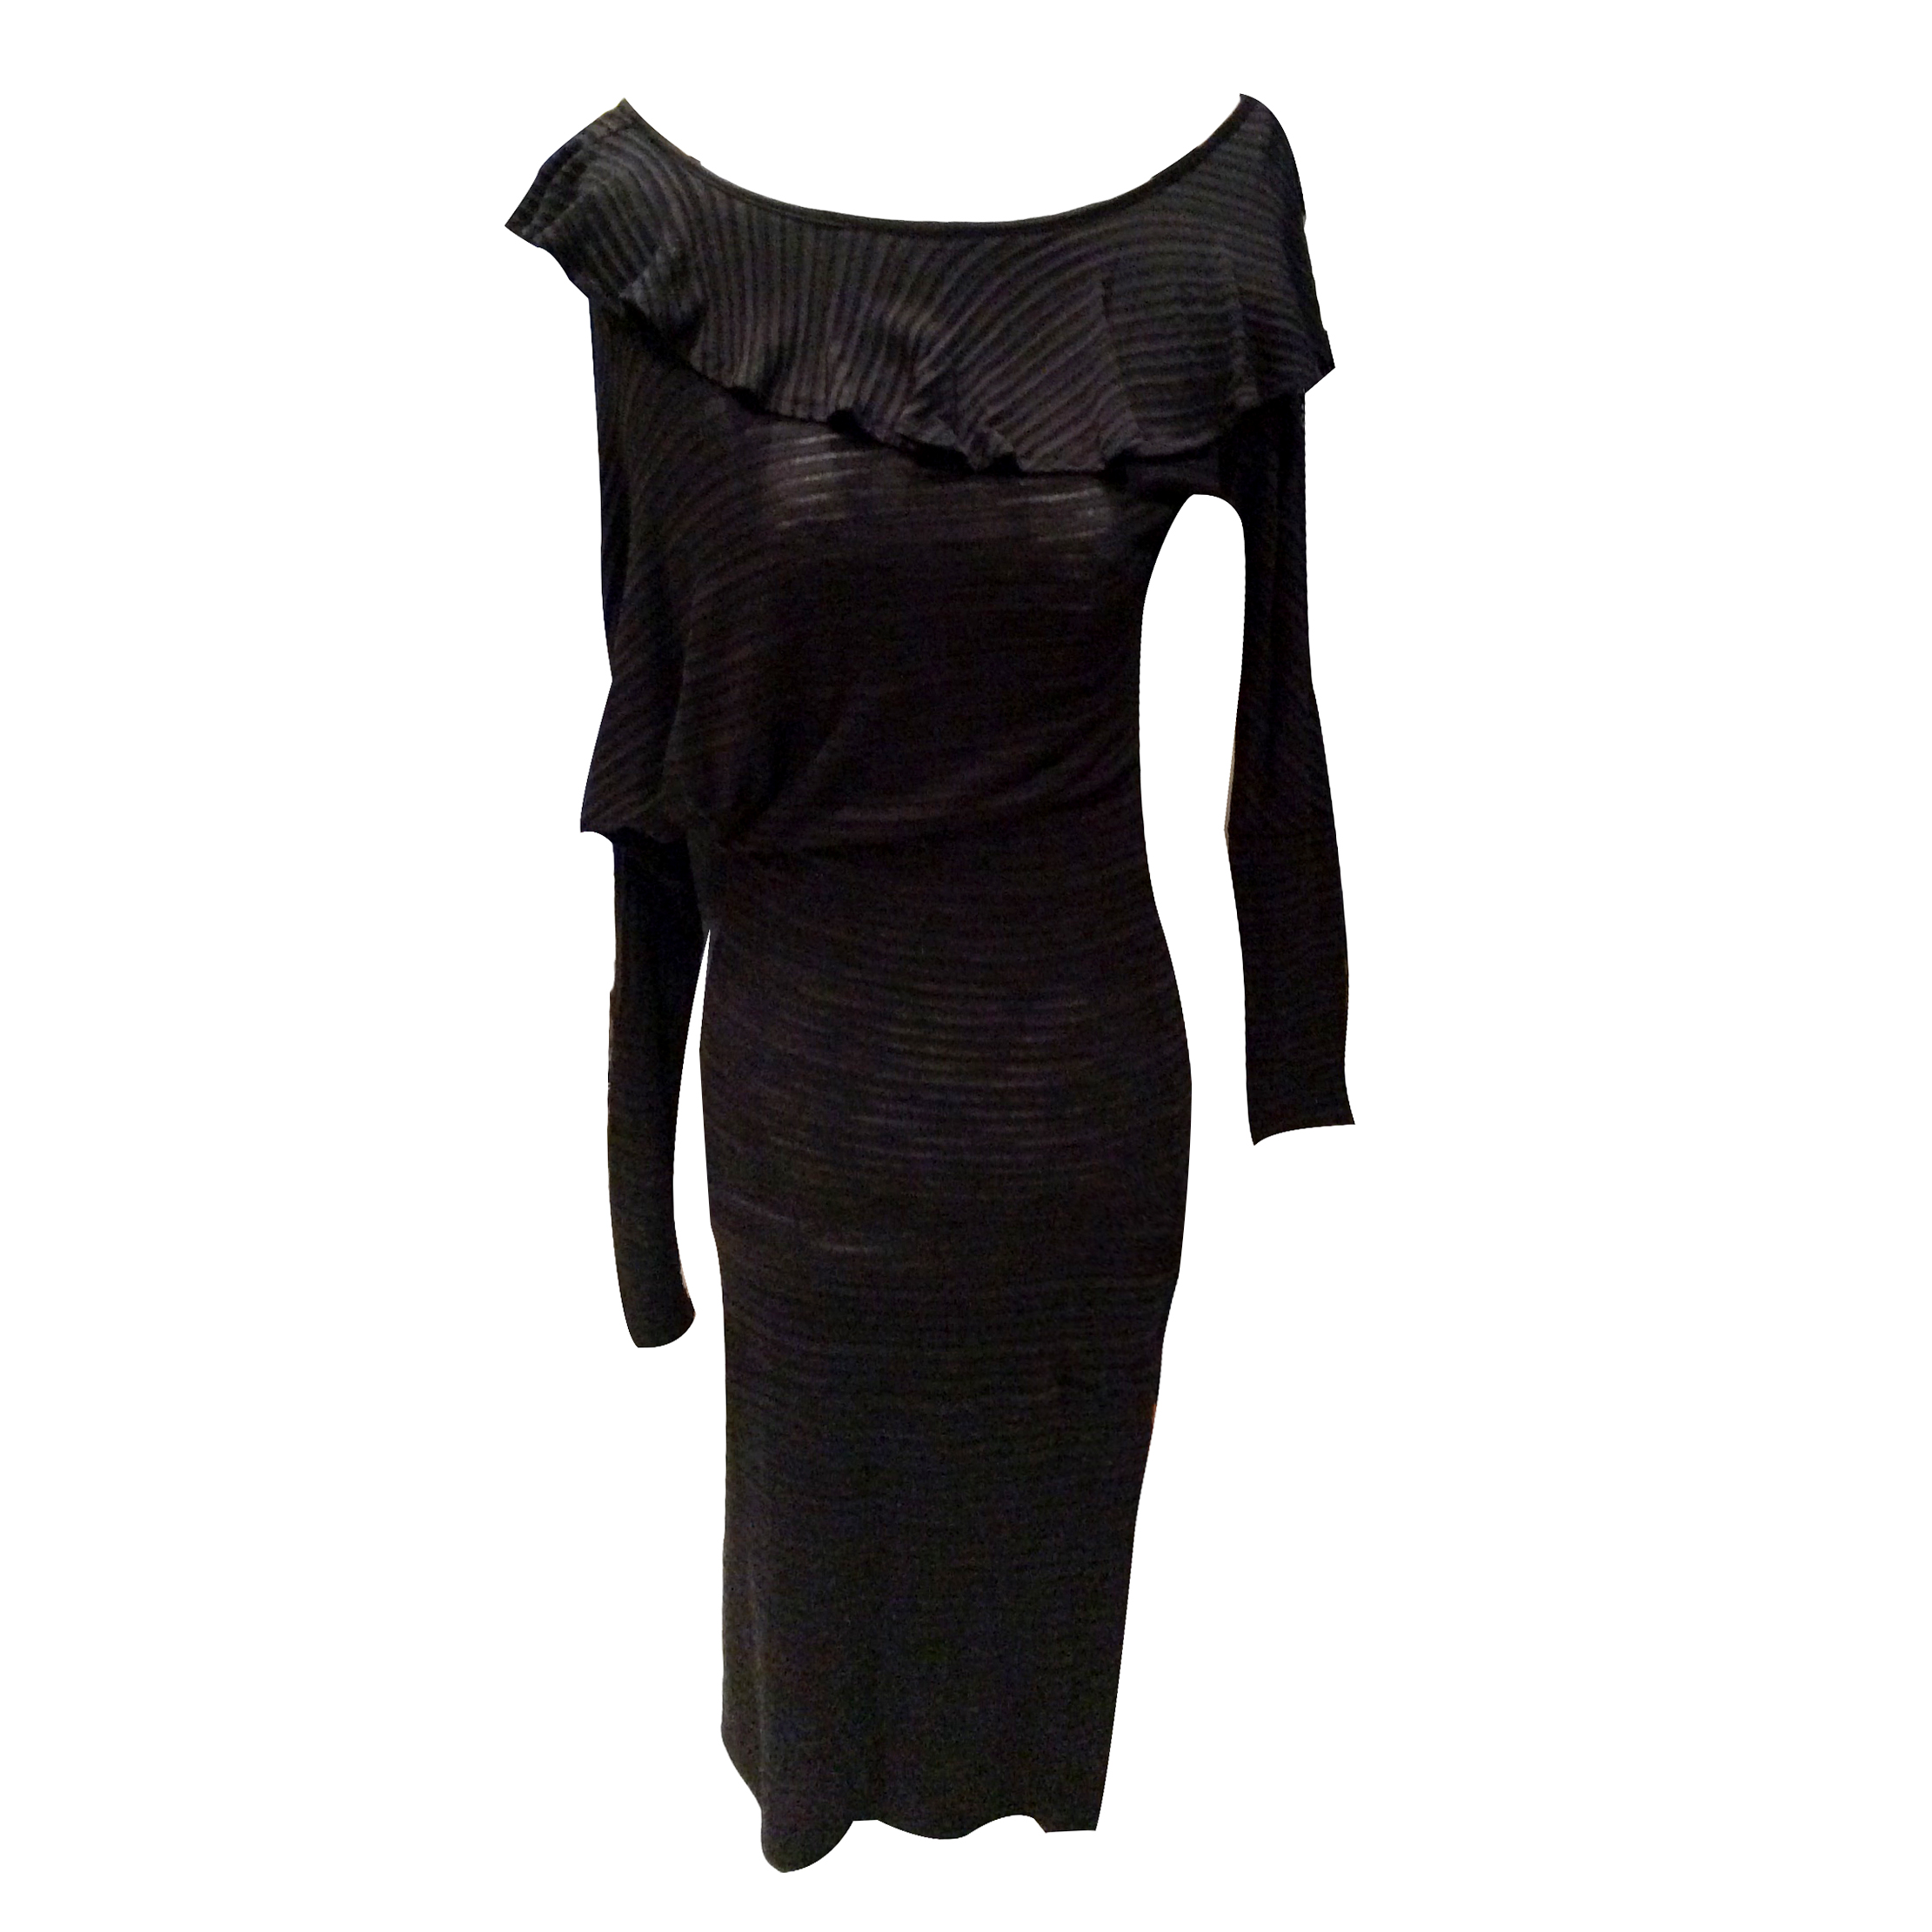 Supertrash ladies Dress